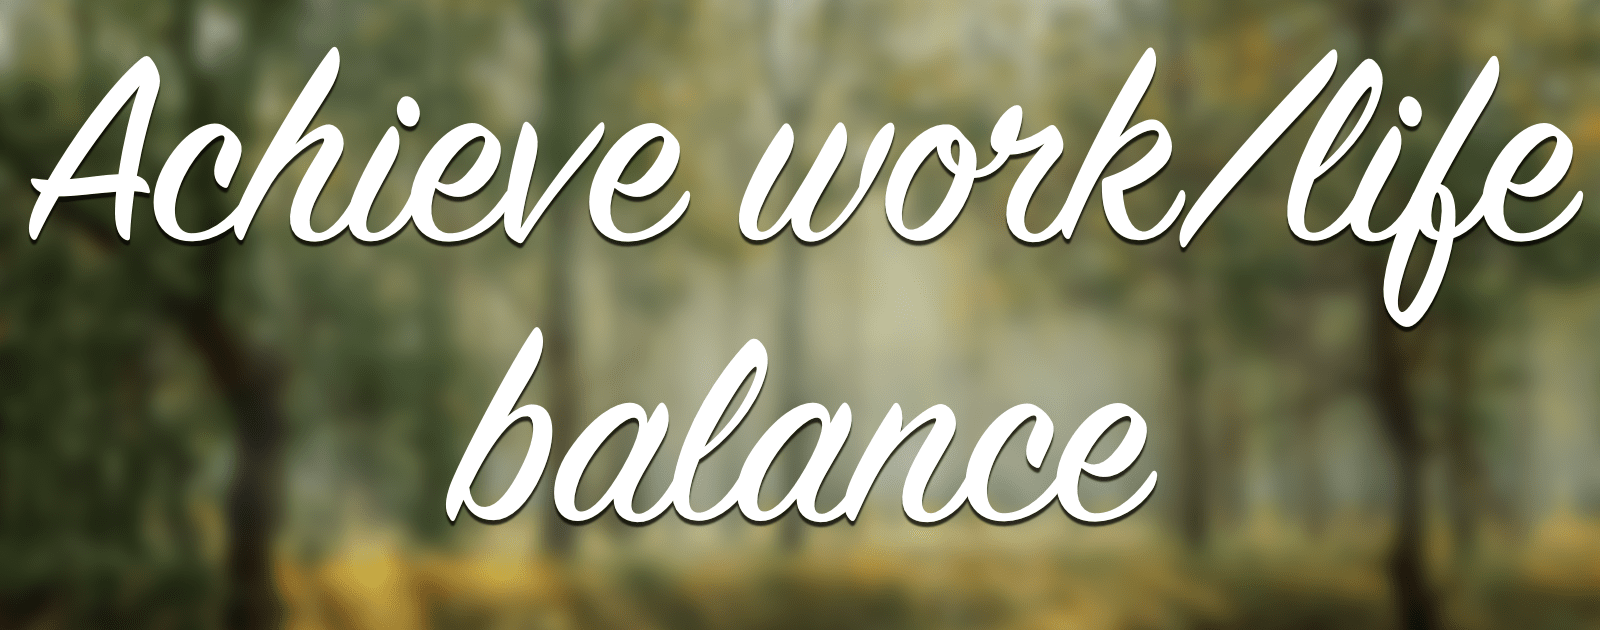 4 apps to help you achieve work life balance the mac observer - Work Life Balance Tips Creating A Quality Work Life Balance